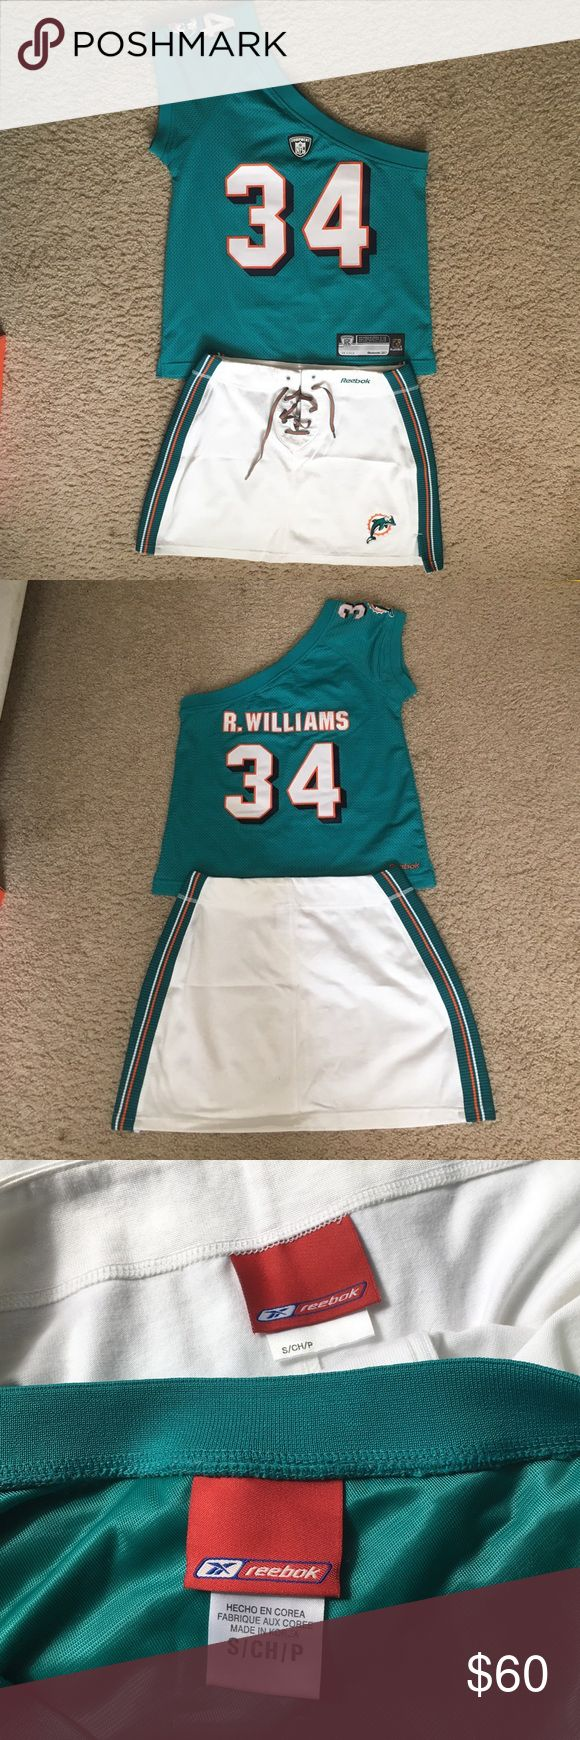 Jersey & mini skirt outfit Ricky Williams lady jersey, 88% Polyester and 12% spandex. Mini skirt 65% cotton, 35 % polyester length 14 inches from waist down. Hardly worn. Reebok Other